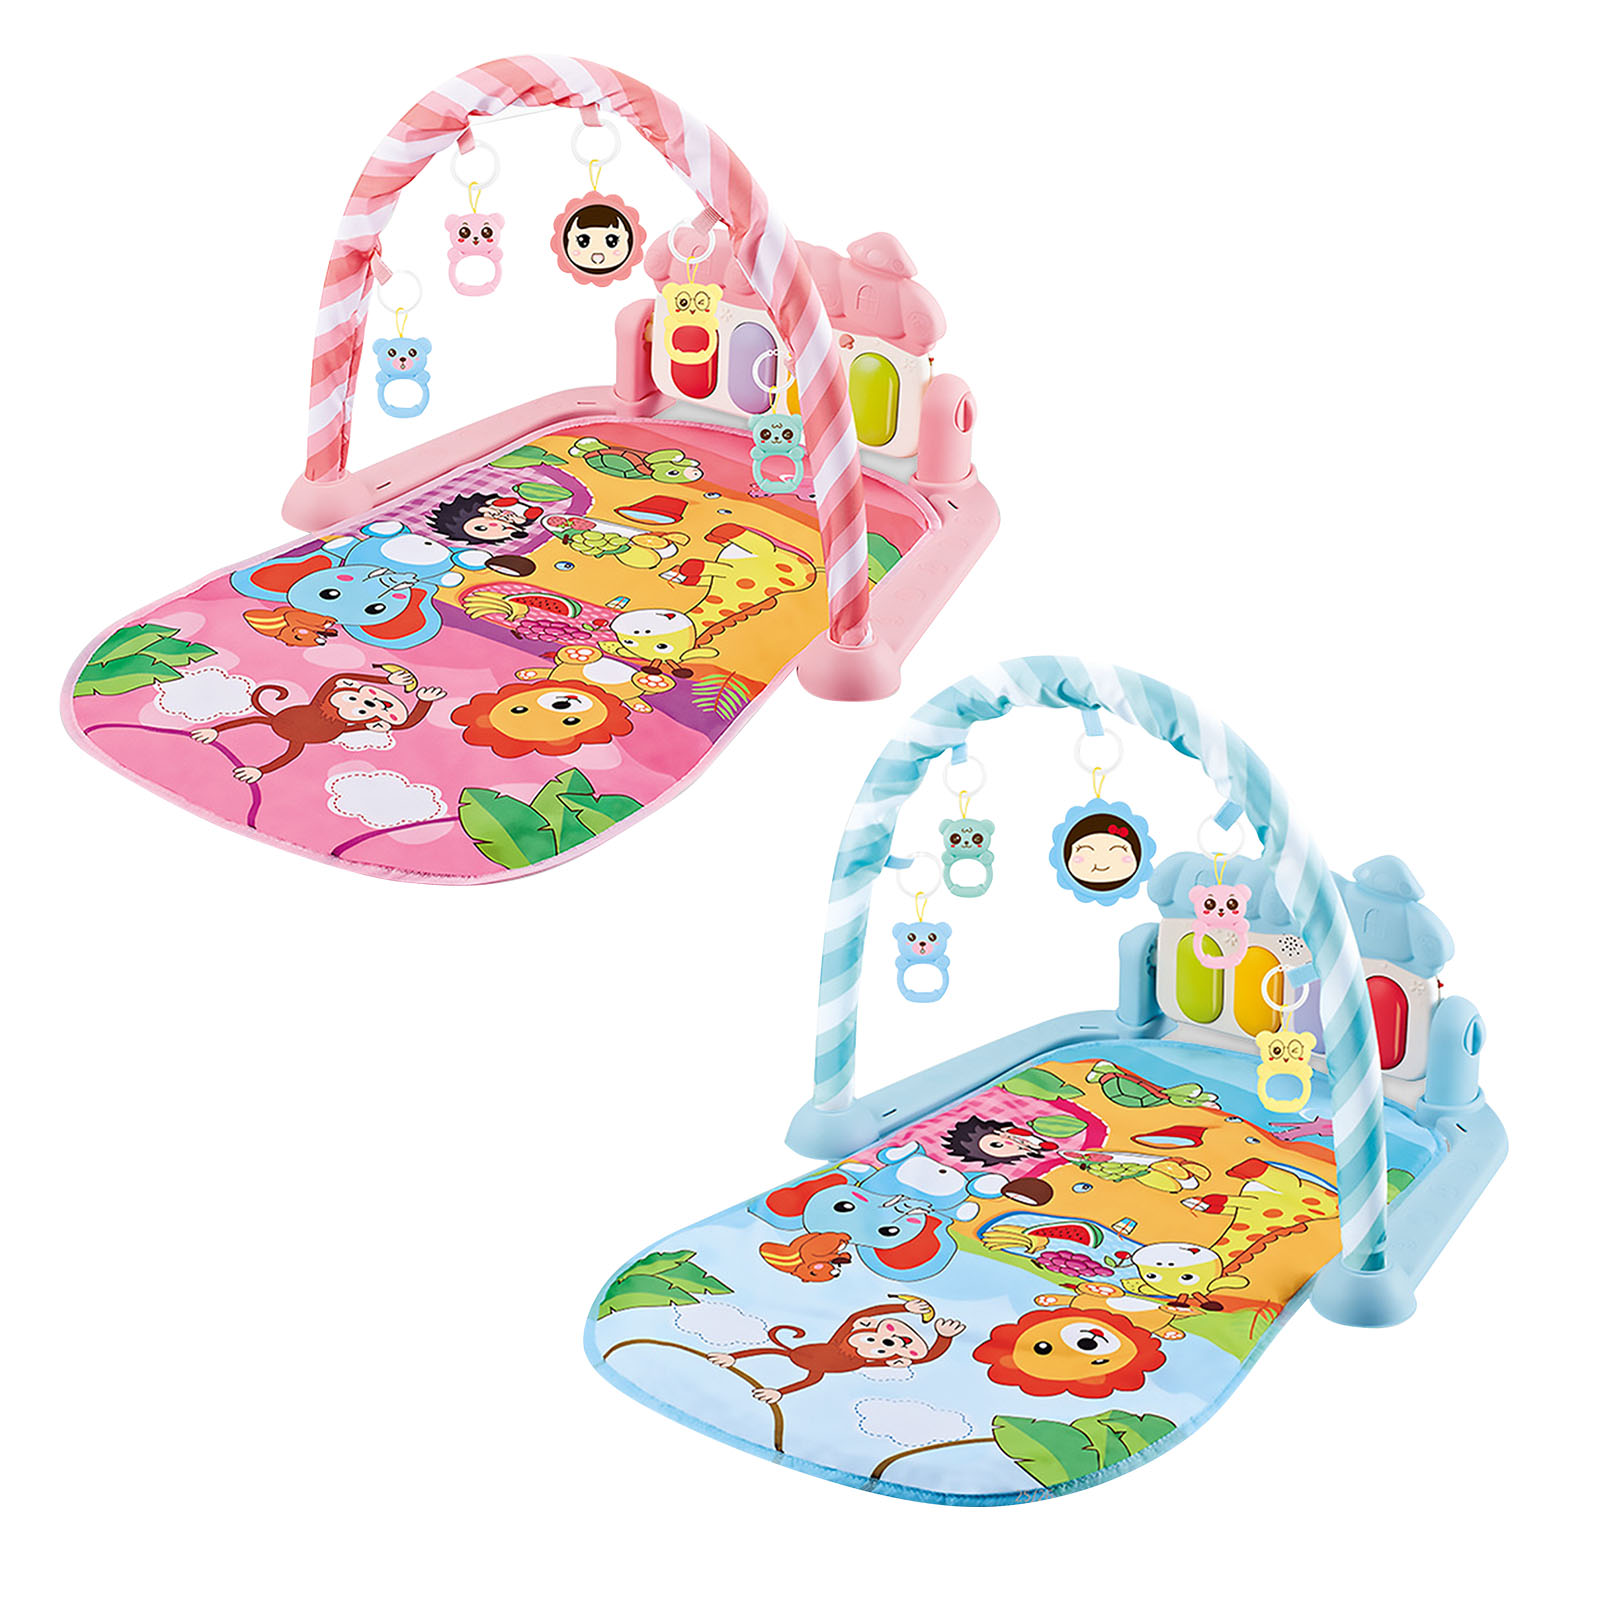 Baby Gym Play Mats Kick And Play Piano Gym Activity Center For Infants Gym Crawling Activity Rug Toys For 0-12 Months